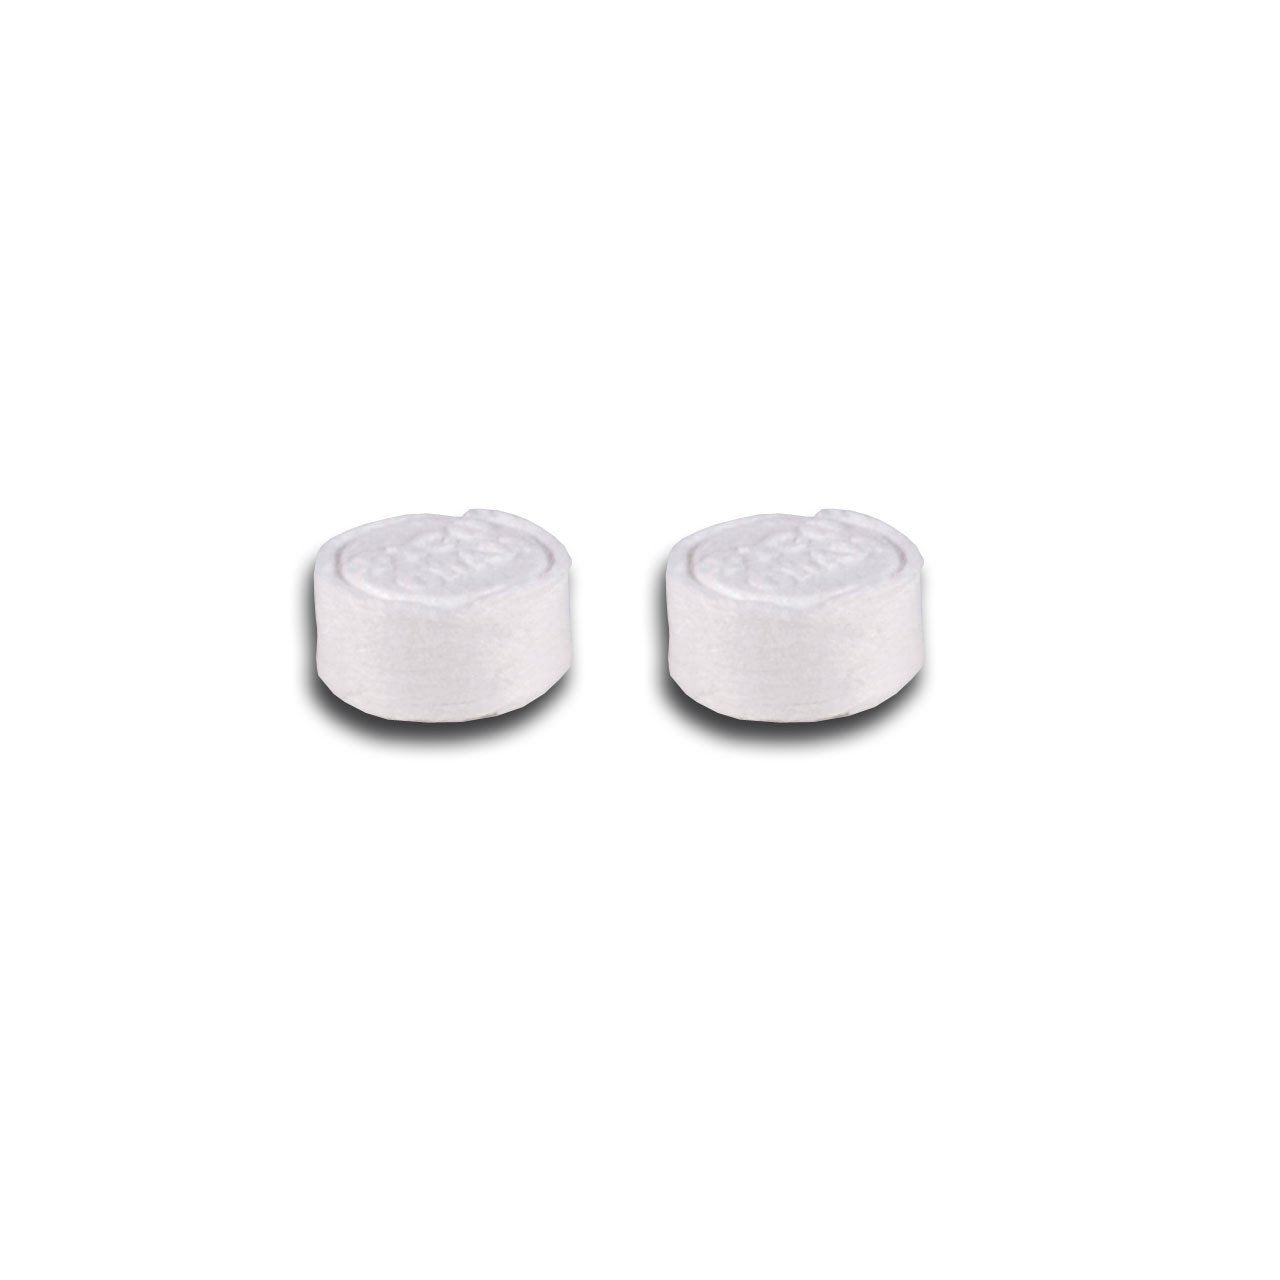 610026 - Leak Protector Replacement Tablets (2 Pack), by Watts Premier